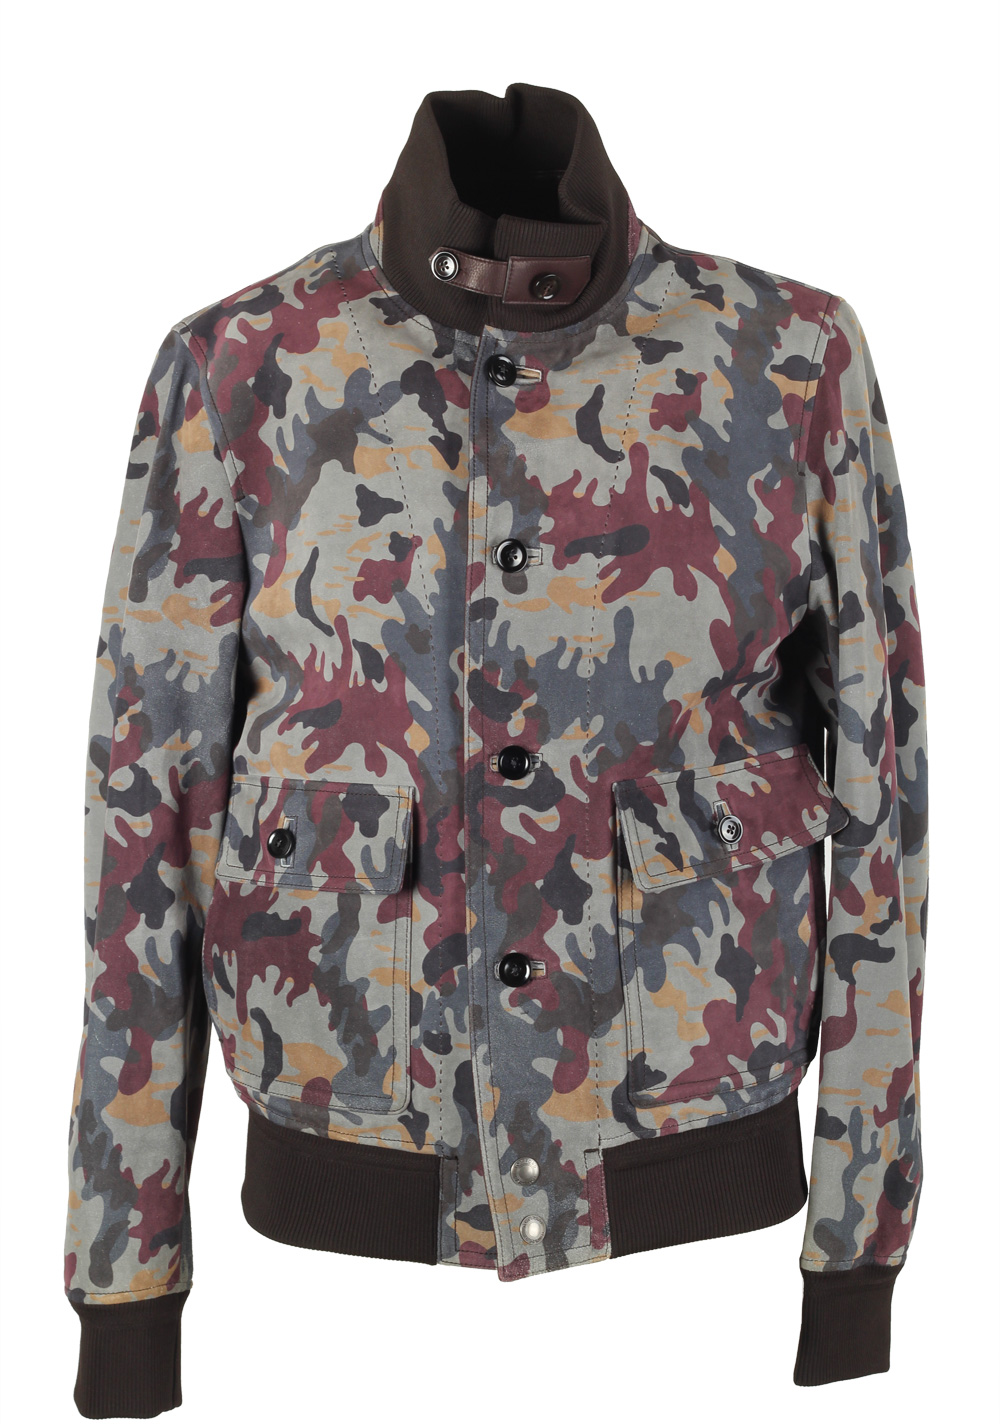 TOM FORD Camouflage Leather Suede Bomber Jacket Coat Size 48 / 38R U.S. Outerwear | Costume Limité